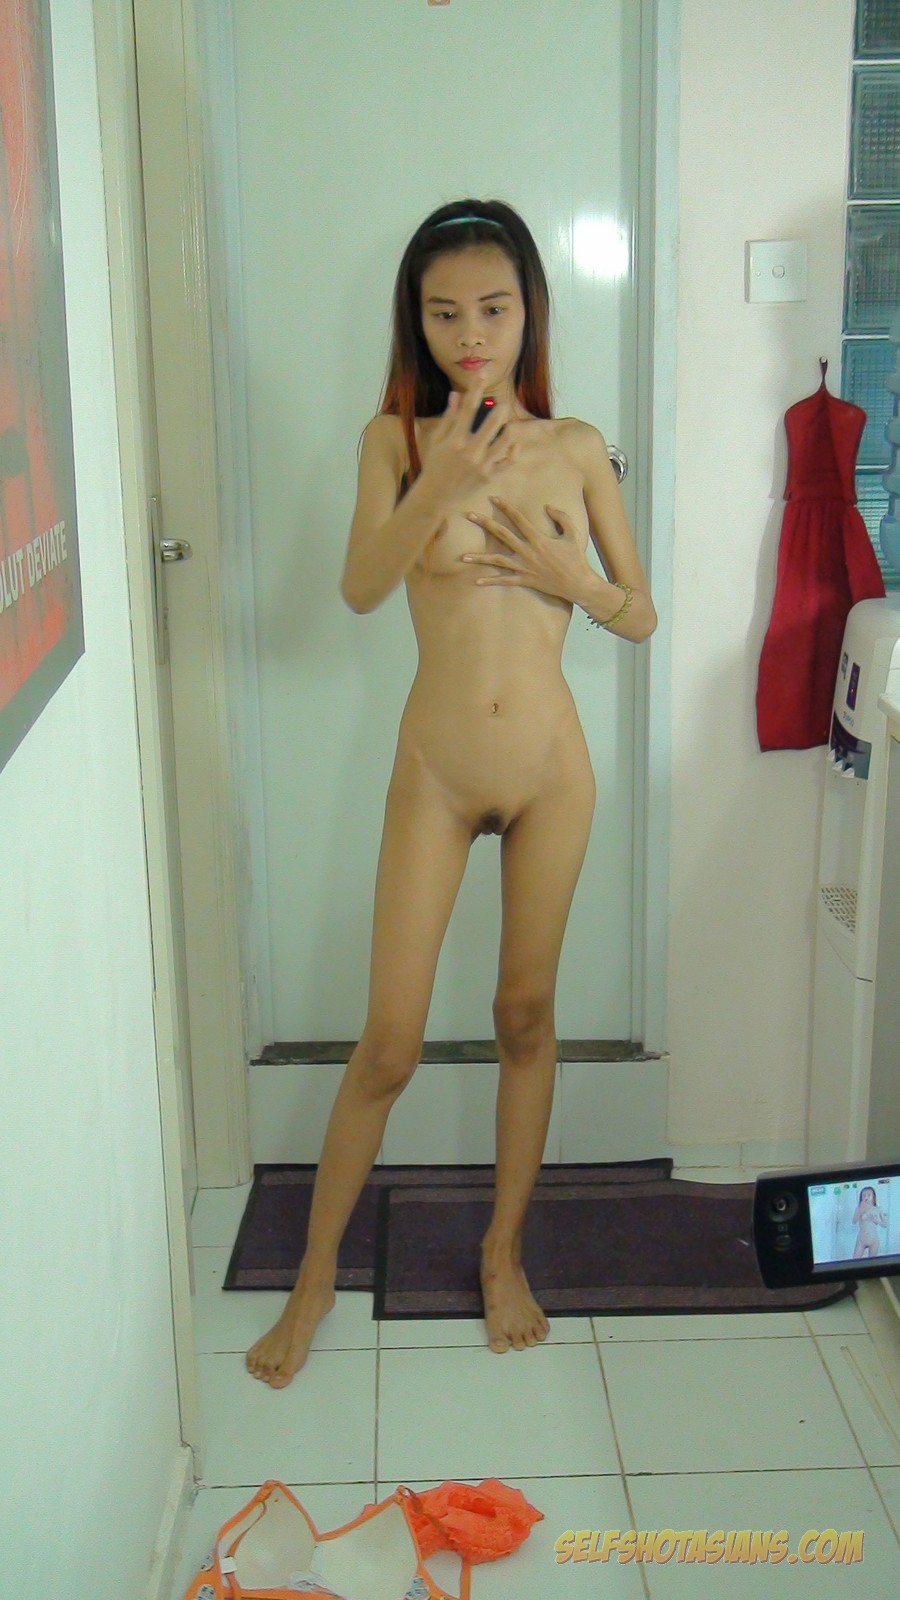 skinny asian girlfriend nudes